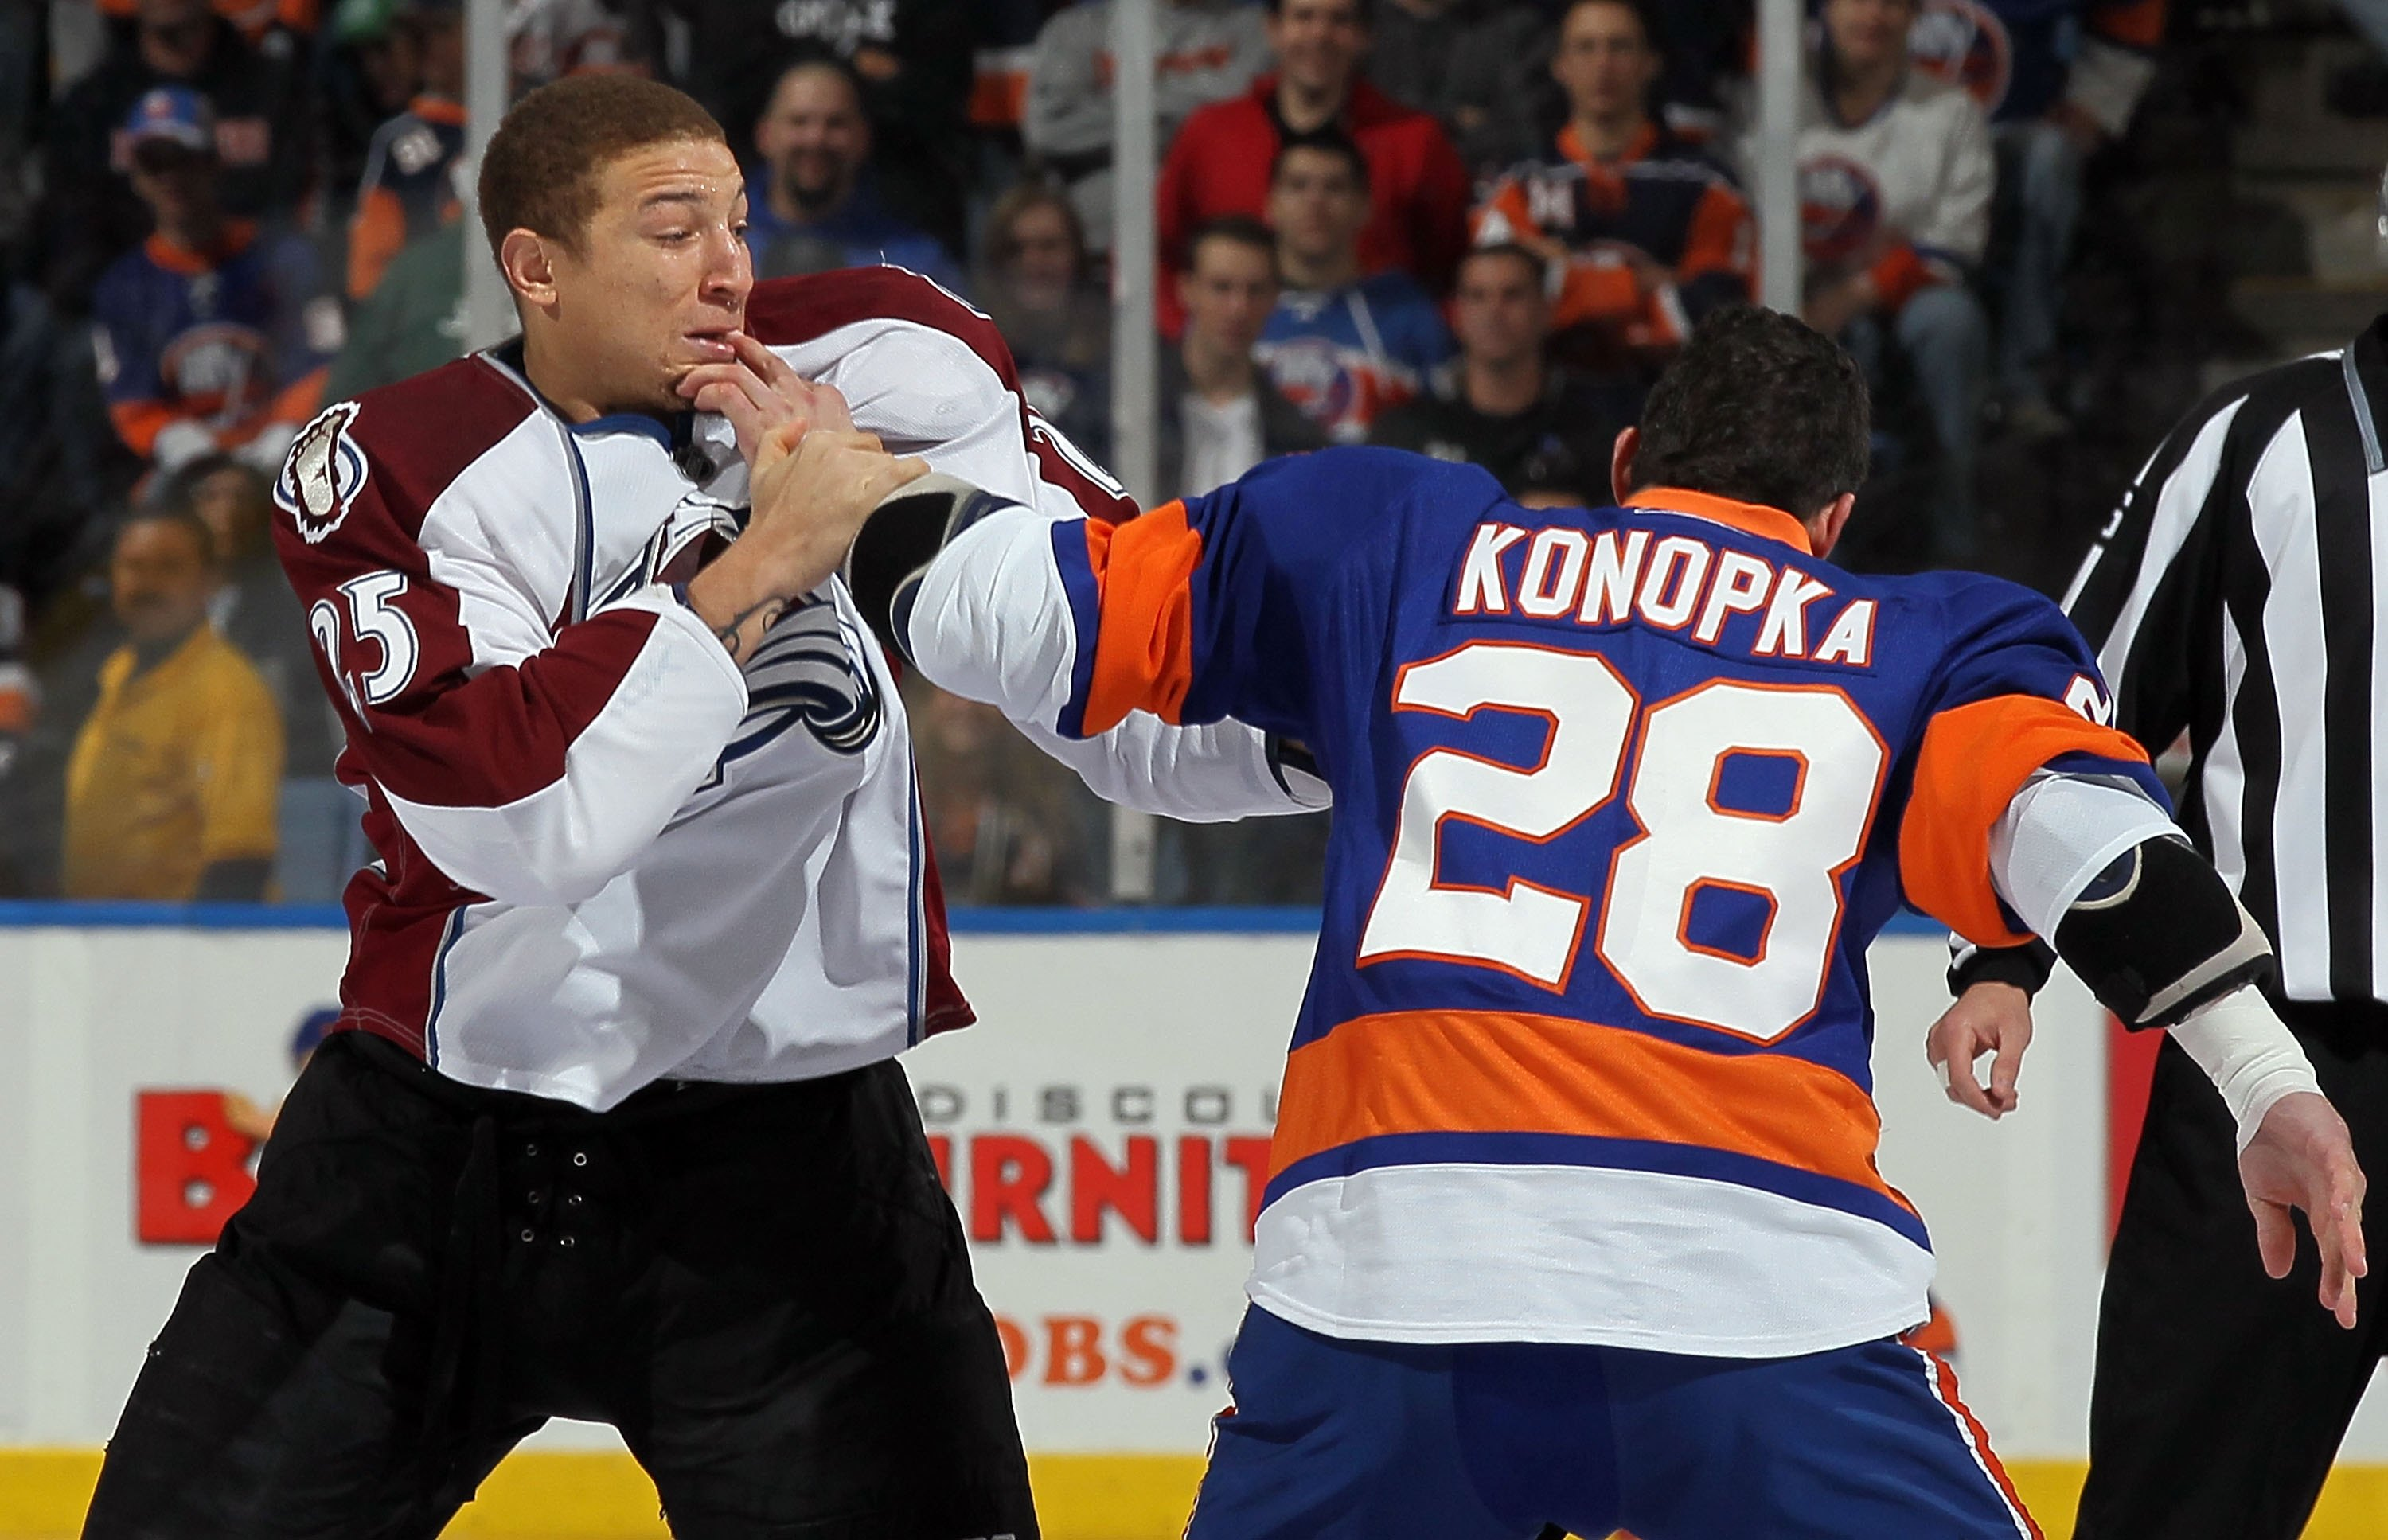 UNIONDALE, NY - OCTOBER 16:  Chris Stewart #25 of the Colorado Avalanche trades punches with Zenon Konopka #28 of the New York Islanders five seconds into their game on October 16, 2010 at Nassau Coliseum in Uniondale, New York.  (Photo by Jim McIsaac/Get